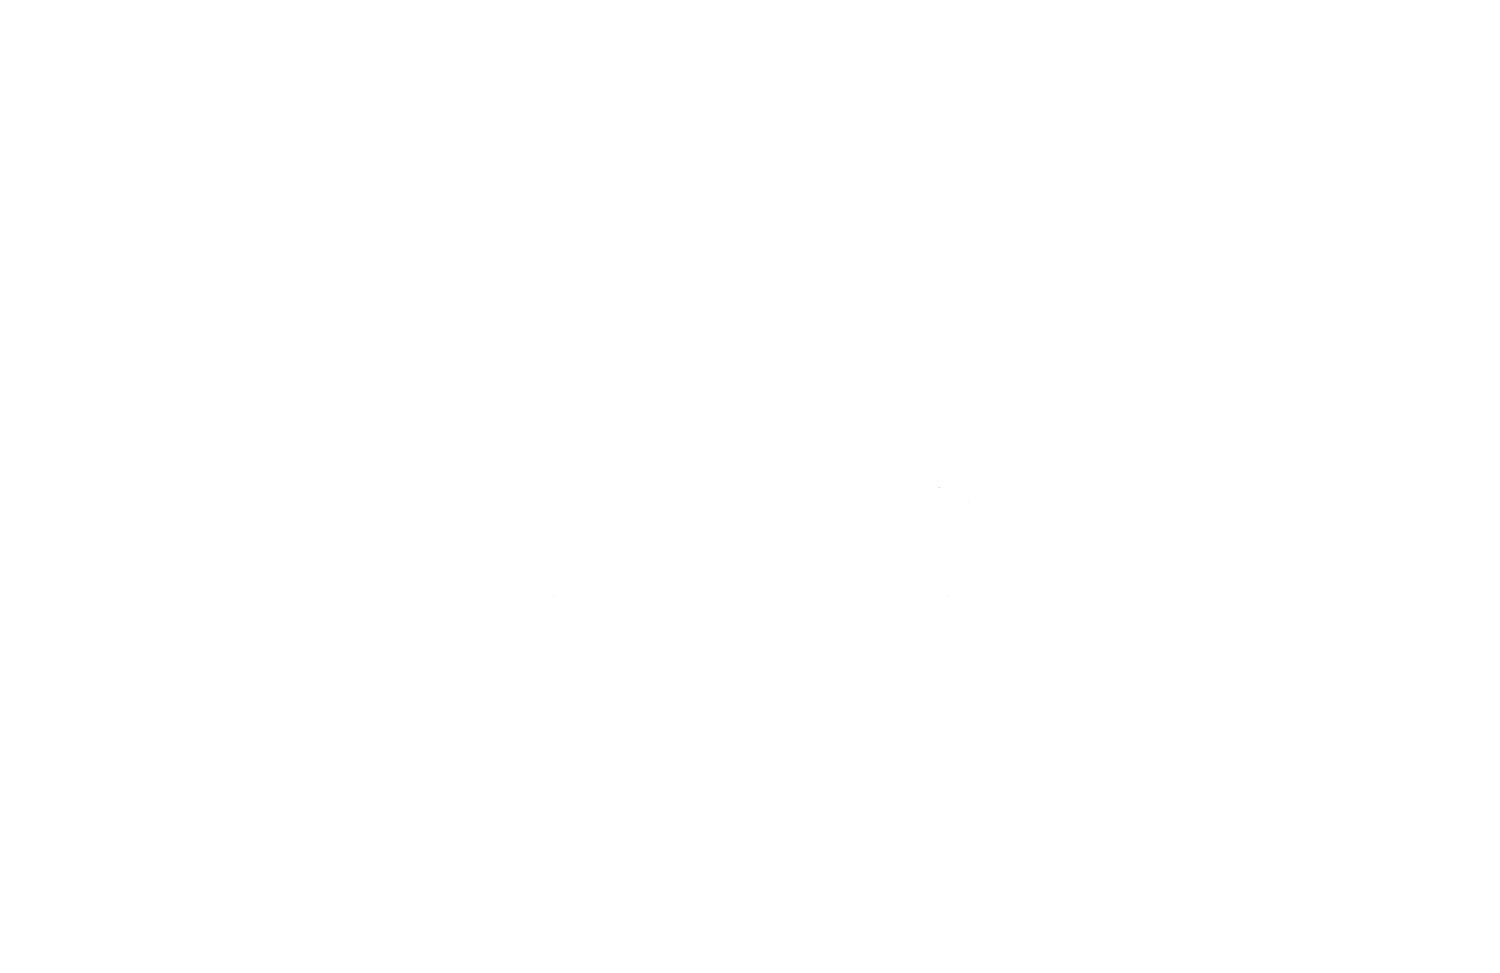 The Flight Center